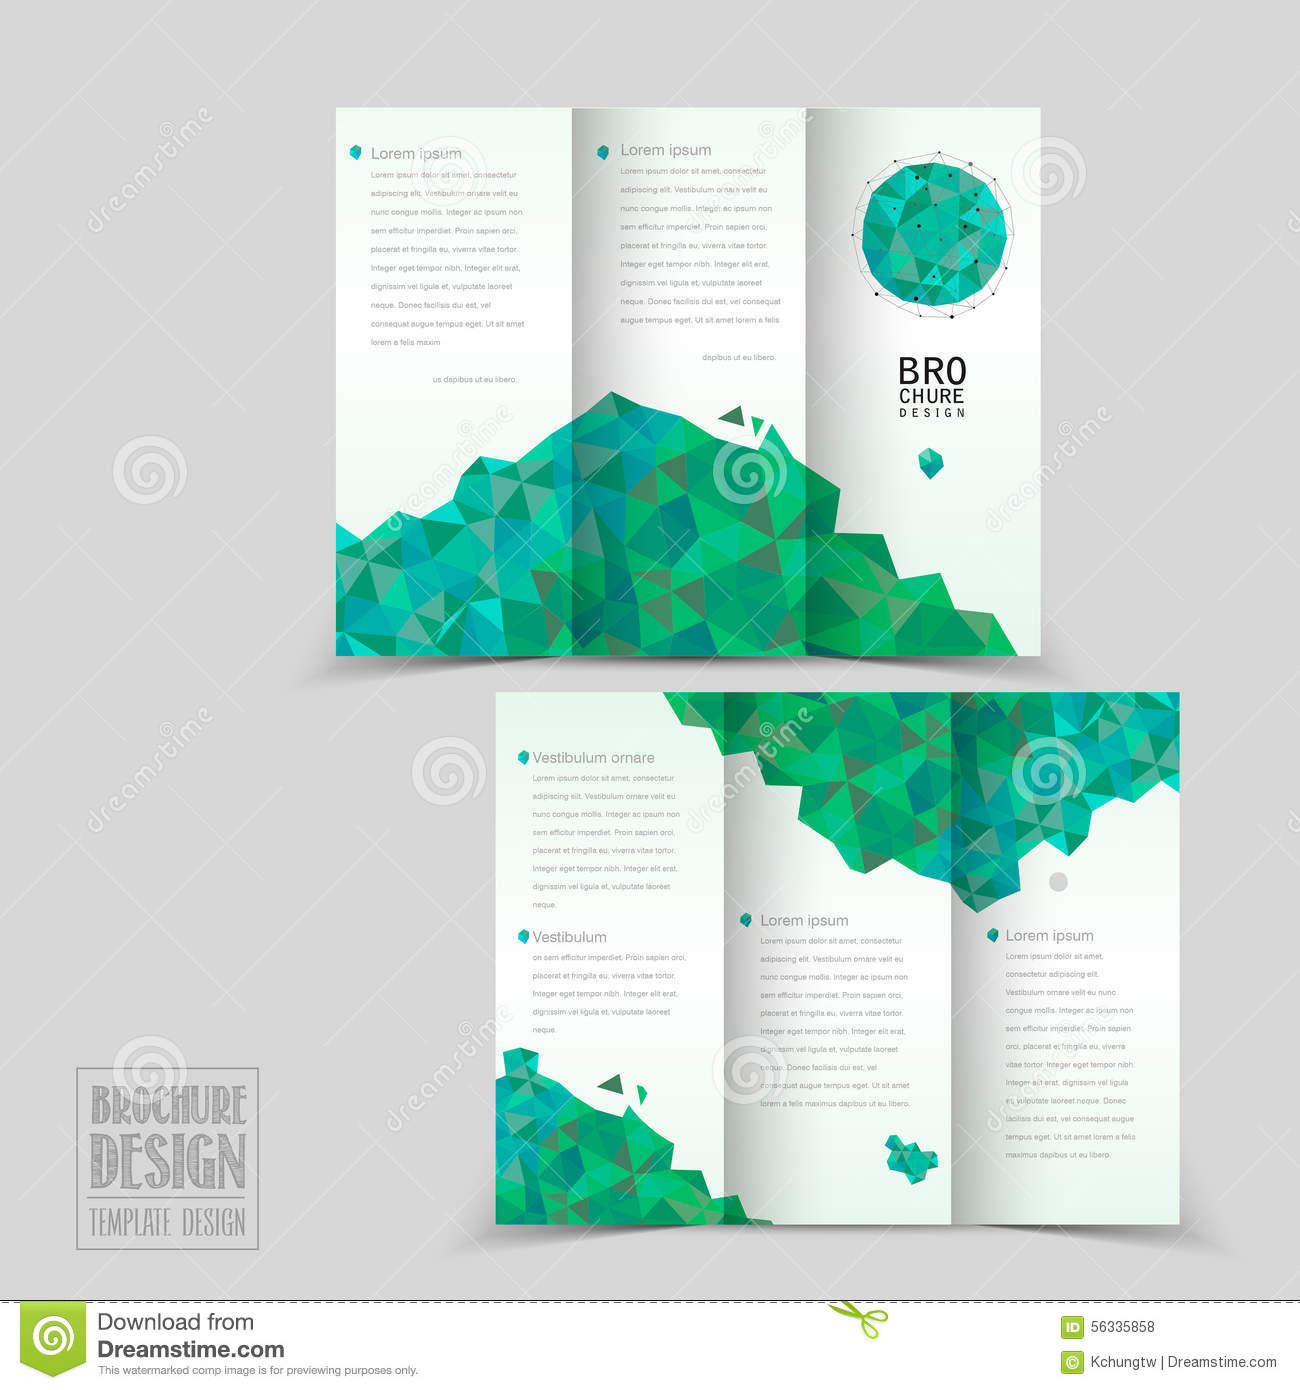 Simplicity tri fold brochure template design stock vector for Tri brochure template